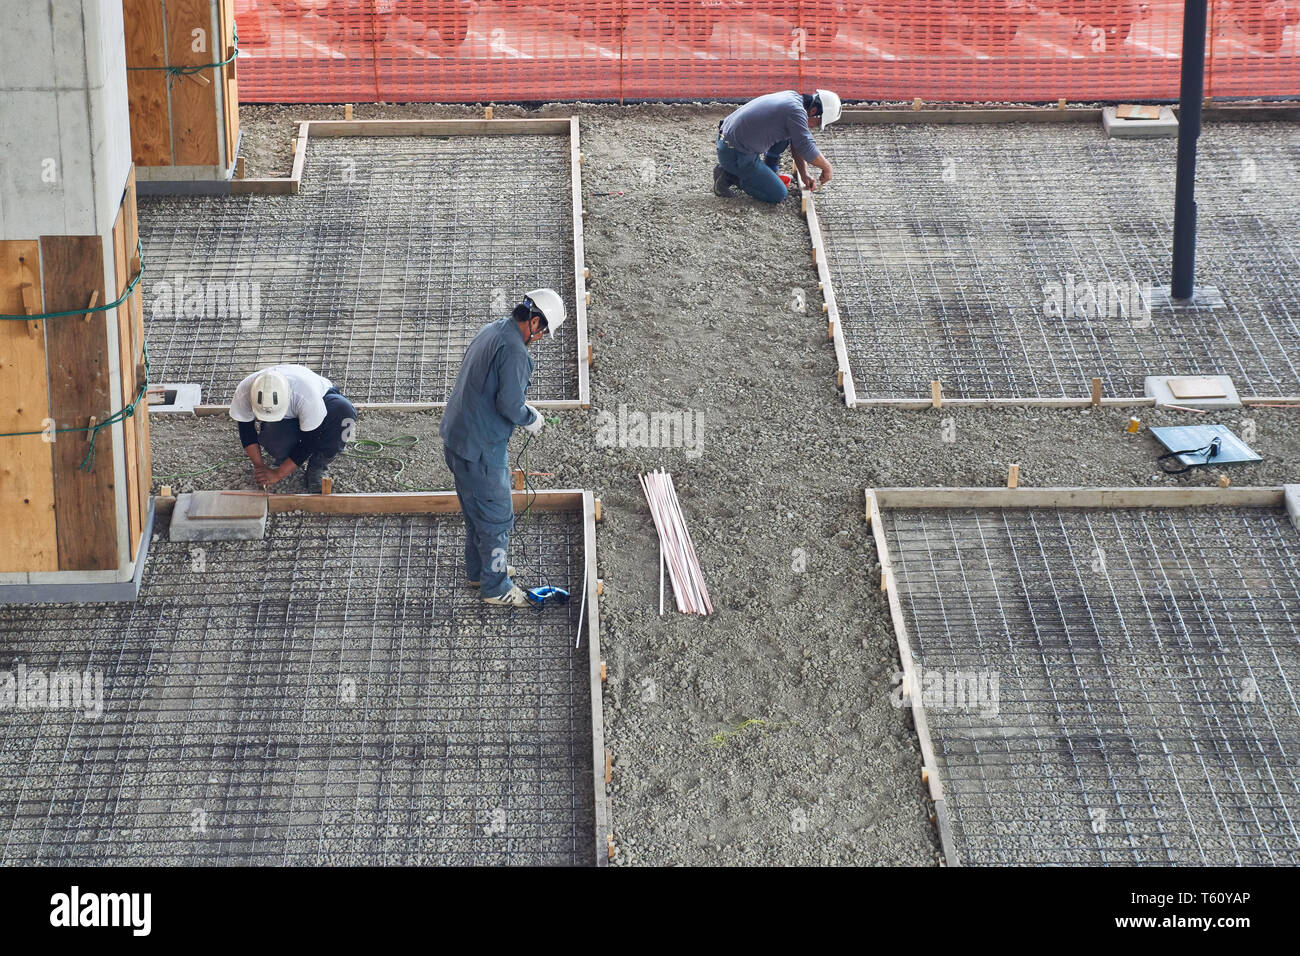 Construction workers prepare frames for pouring concrete at a bicycle parking area underneath Tsukuba Express Moriya Station in Ibaraki, Japan. - Stock Image